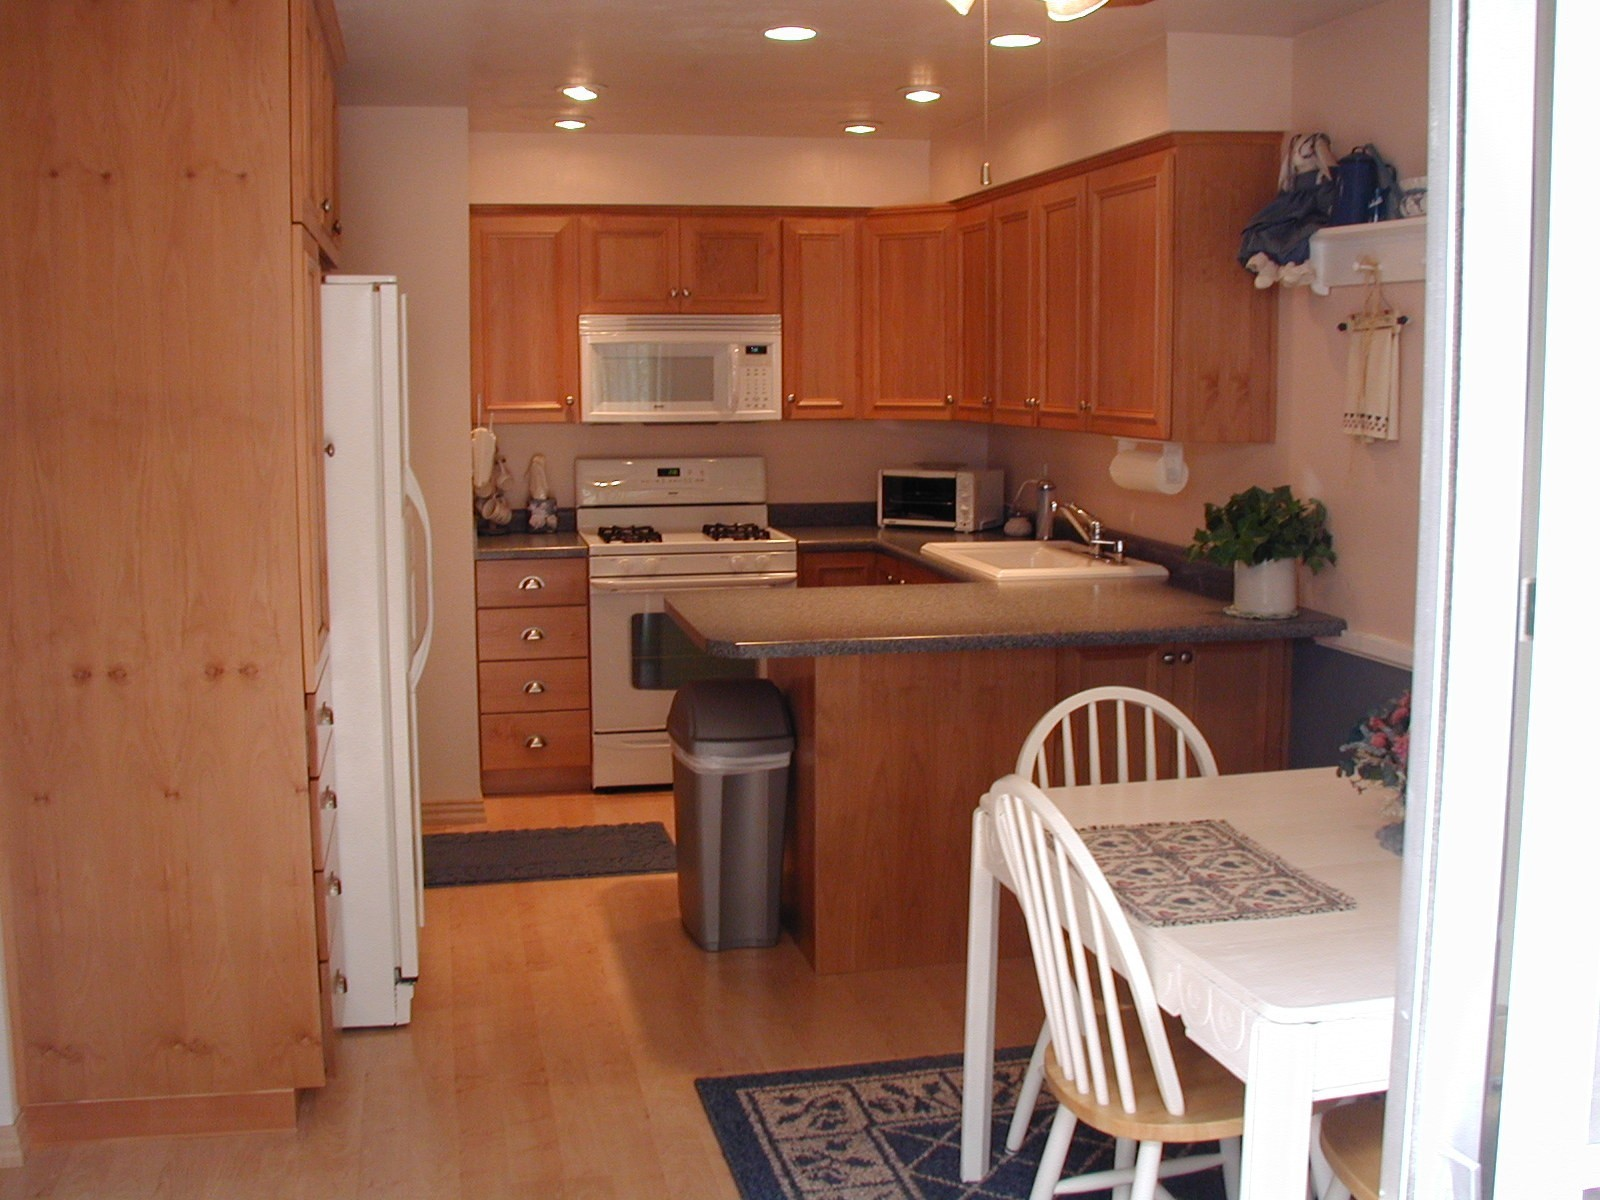 Wooden Floors For Kitchens Kitchen Cabinets Wood Floors Granite Home Depot Lowes House